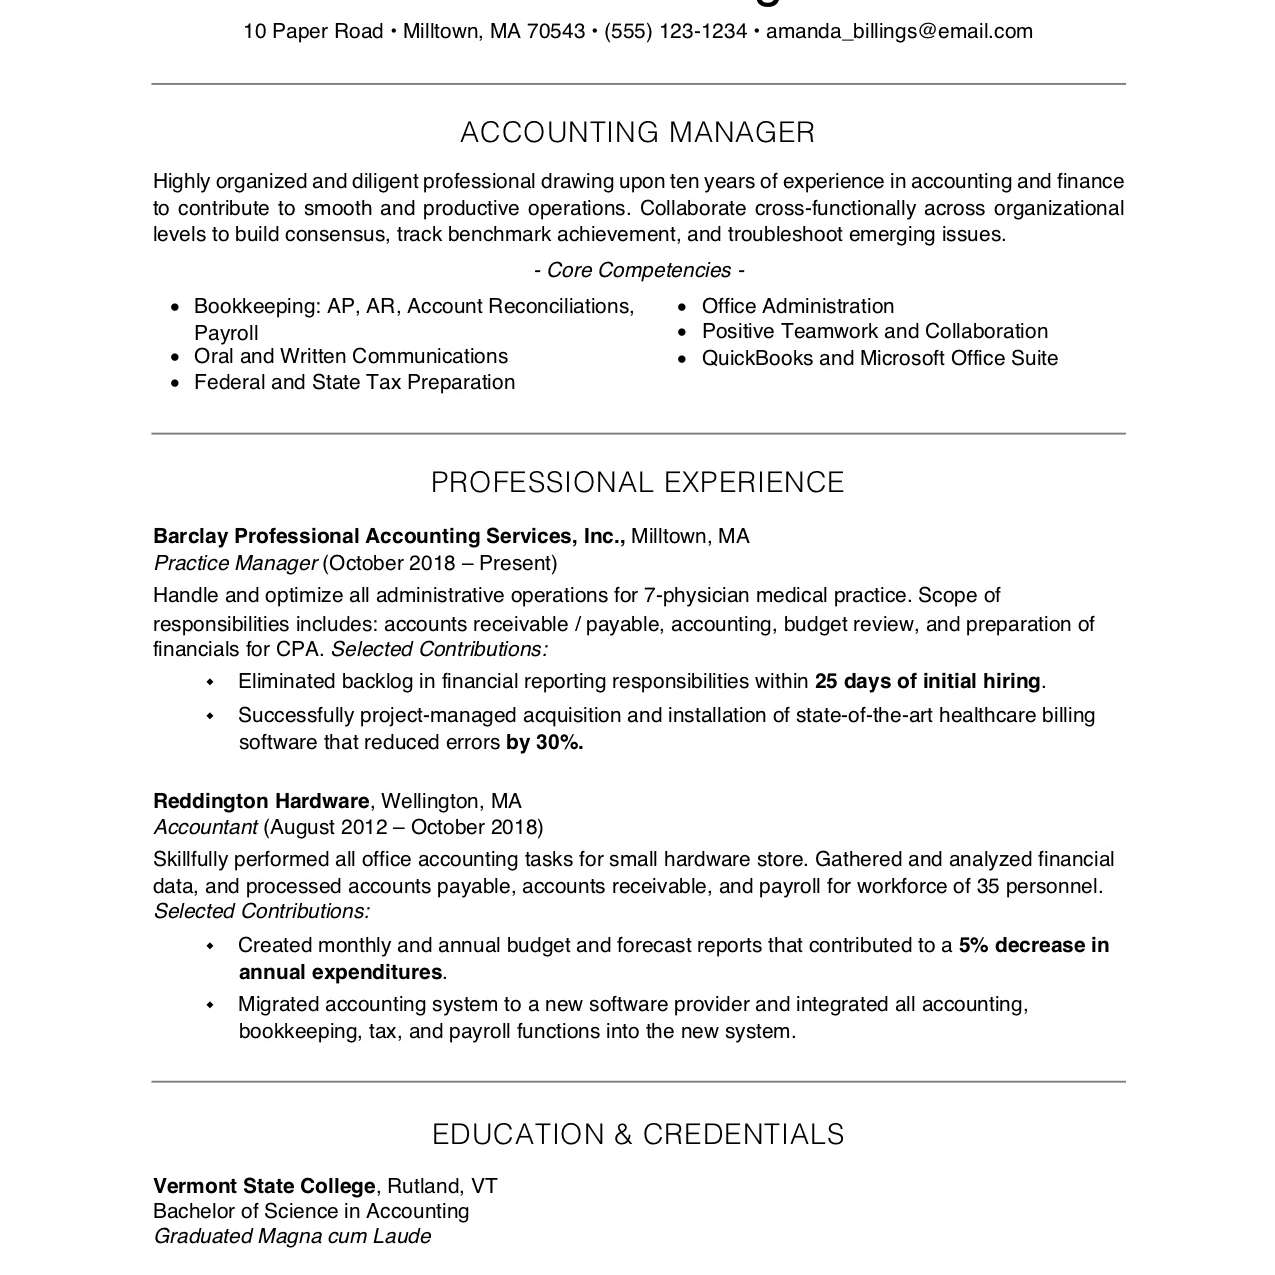 free professional resume examples and writing tips samples 2063596res1 network testing Resume Resume Writing Tips And Samples